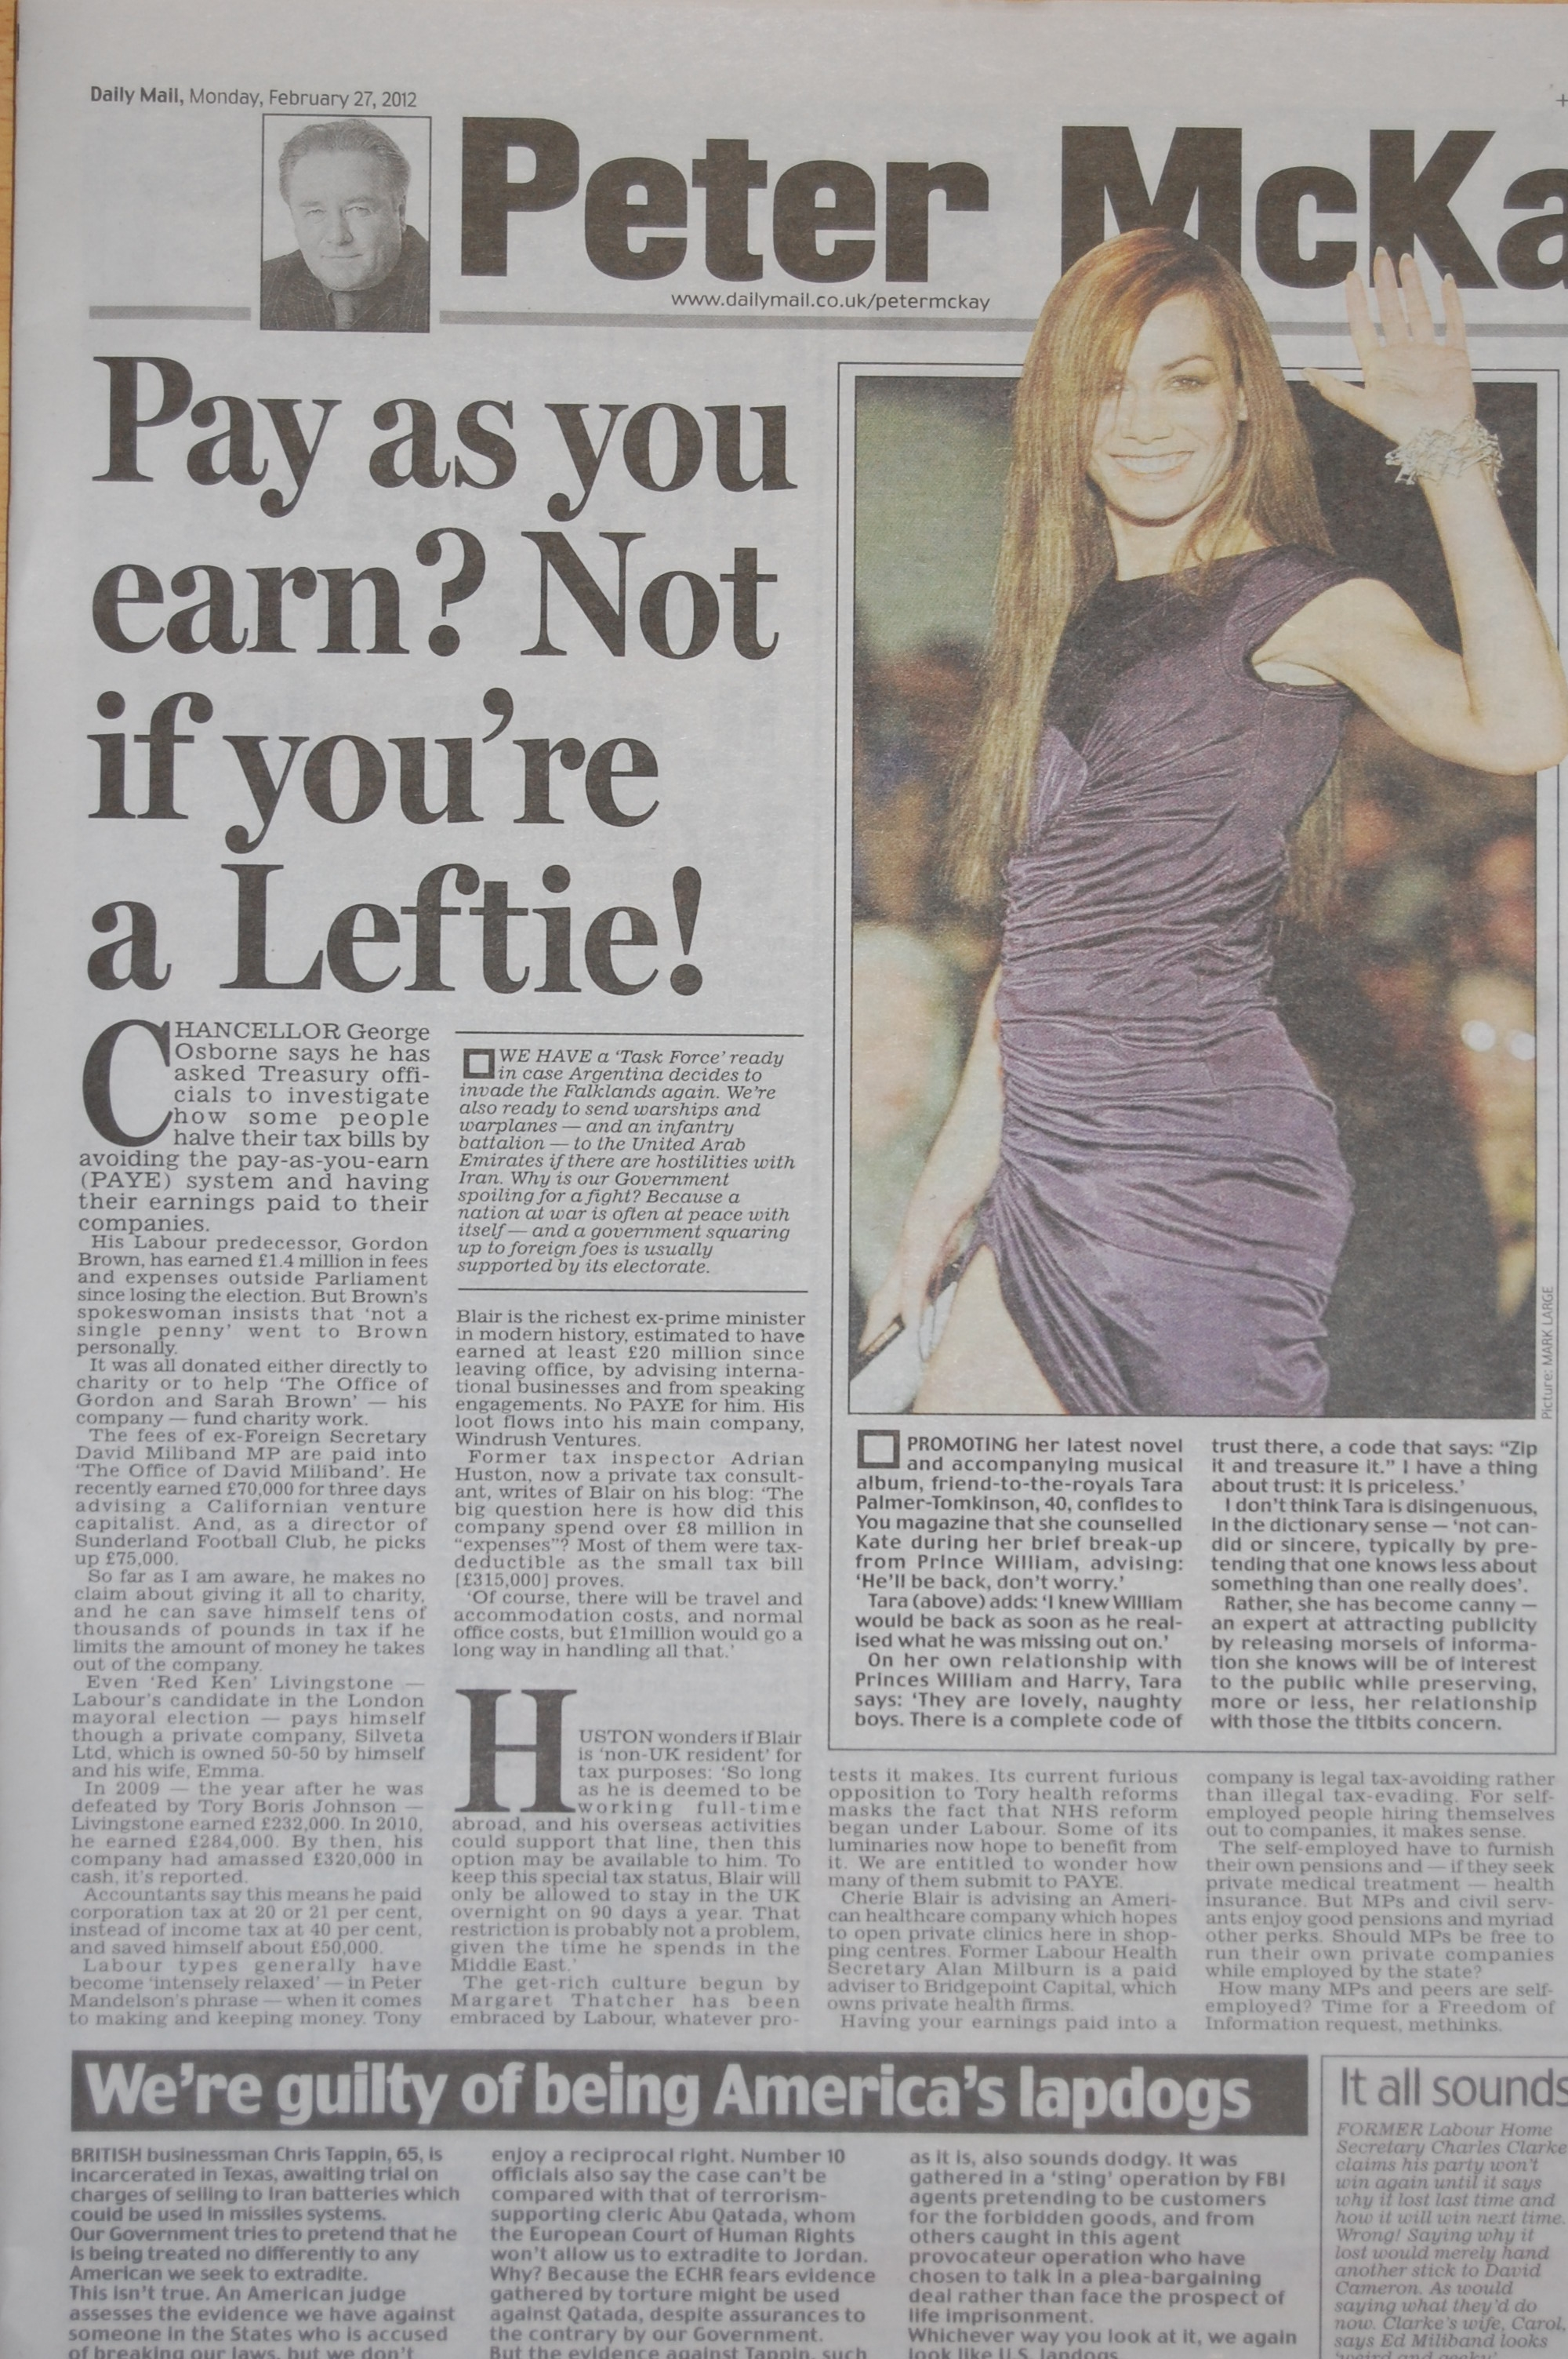 Huston article on Tony Blair's tax quoted in daily mail